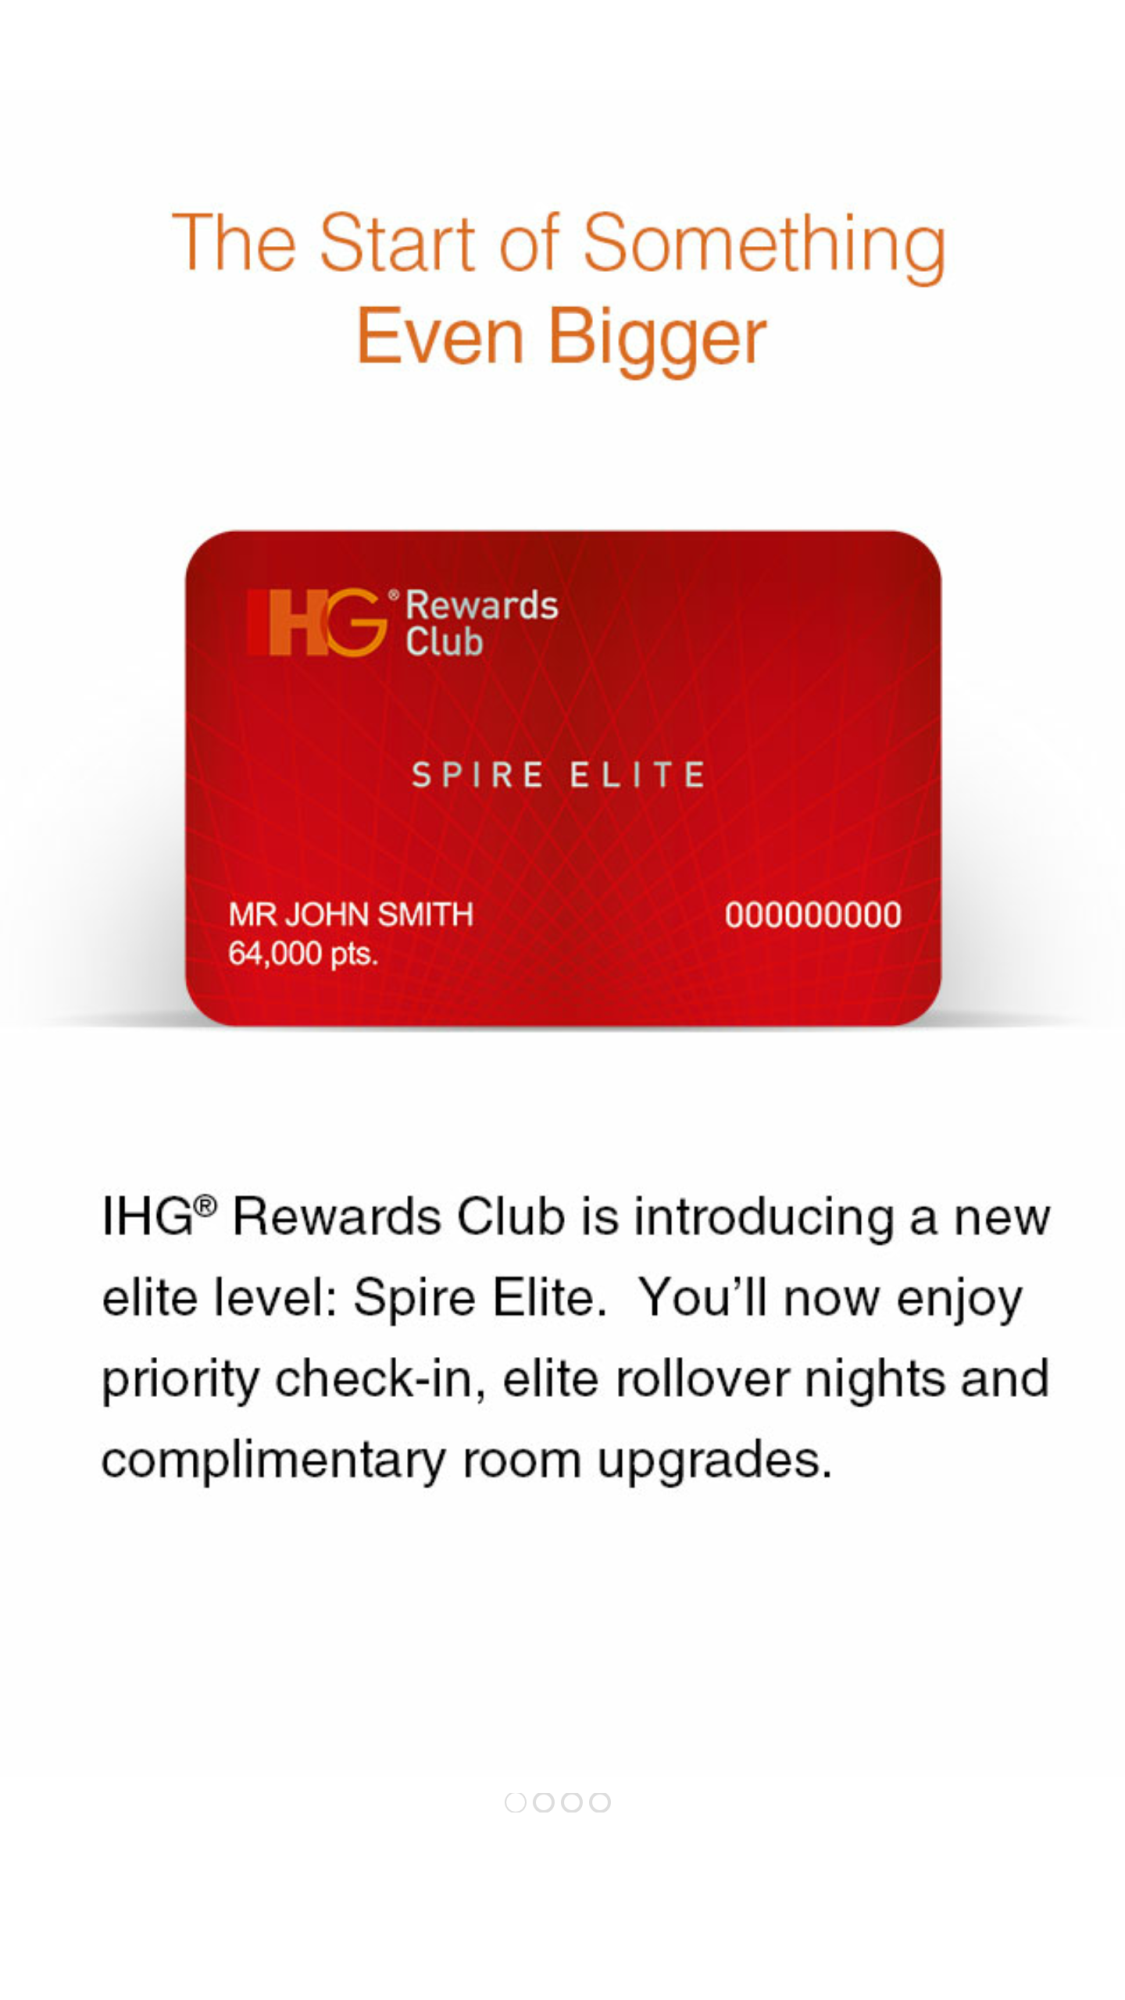 IHG Launches Priority Club® Rewards App for Android™ This new app for Android follows IHG's highly successful iPhone® app release in late April.